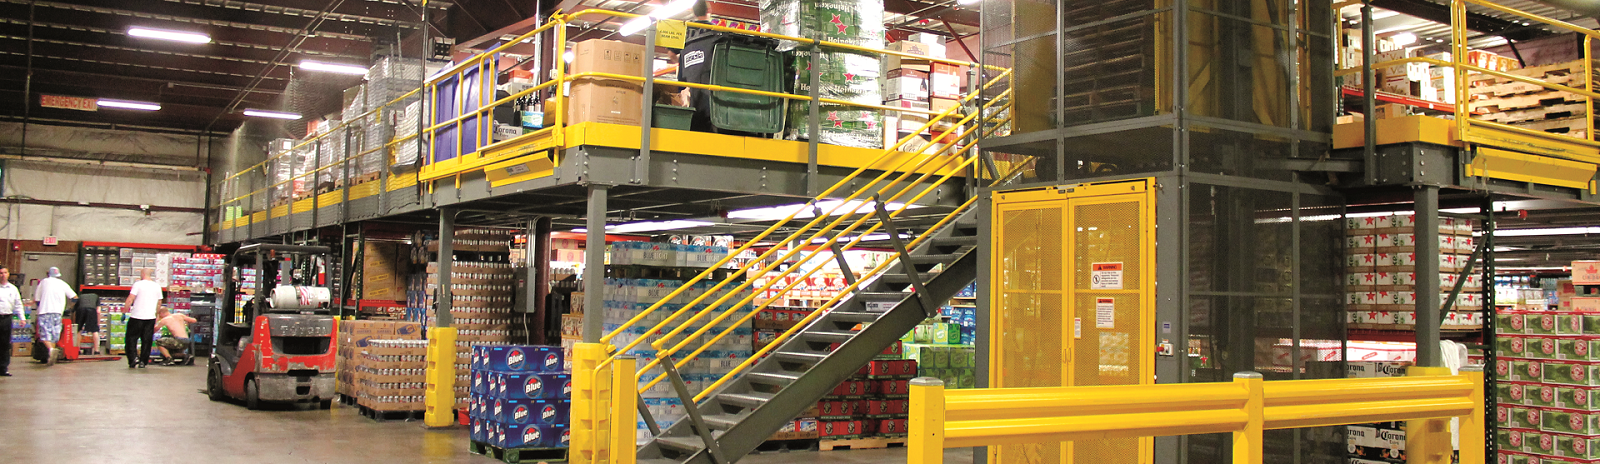 Wildeck Warehouse Efficiency Products